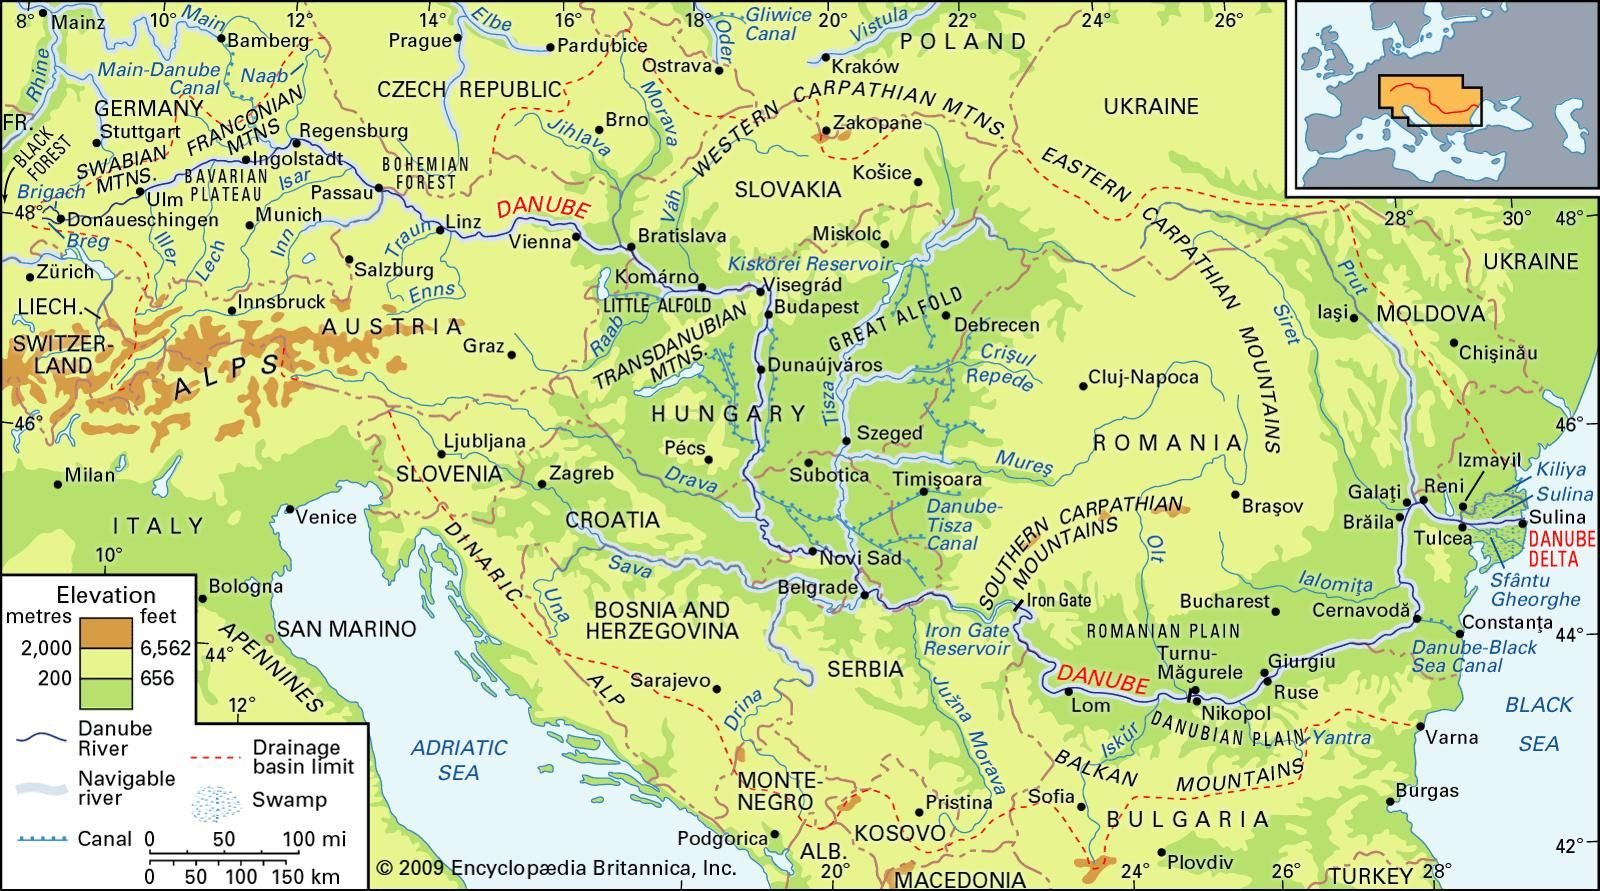 The Danube River Basin And Its Drainage Network Photographs - Danube river location on world map